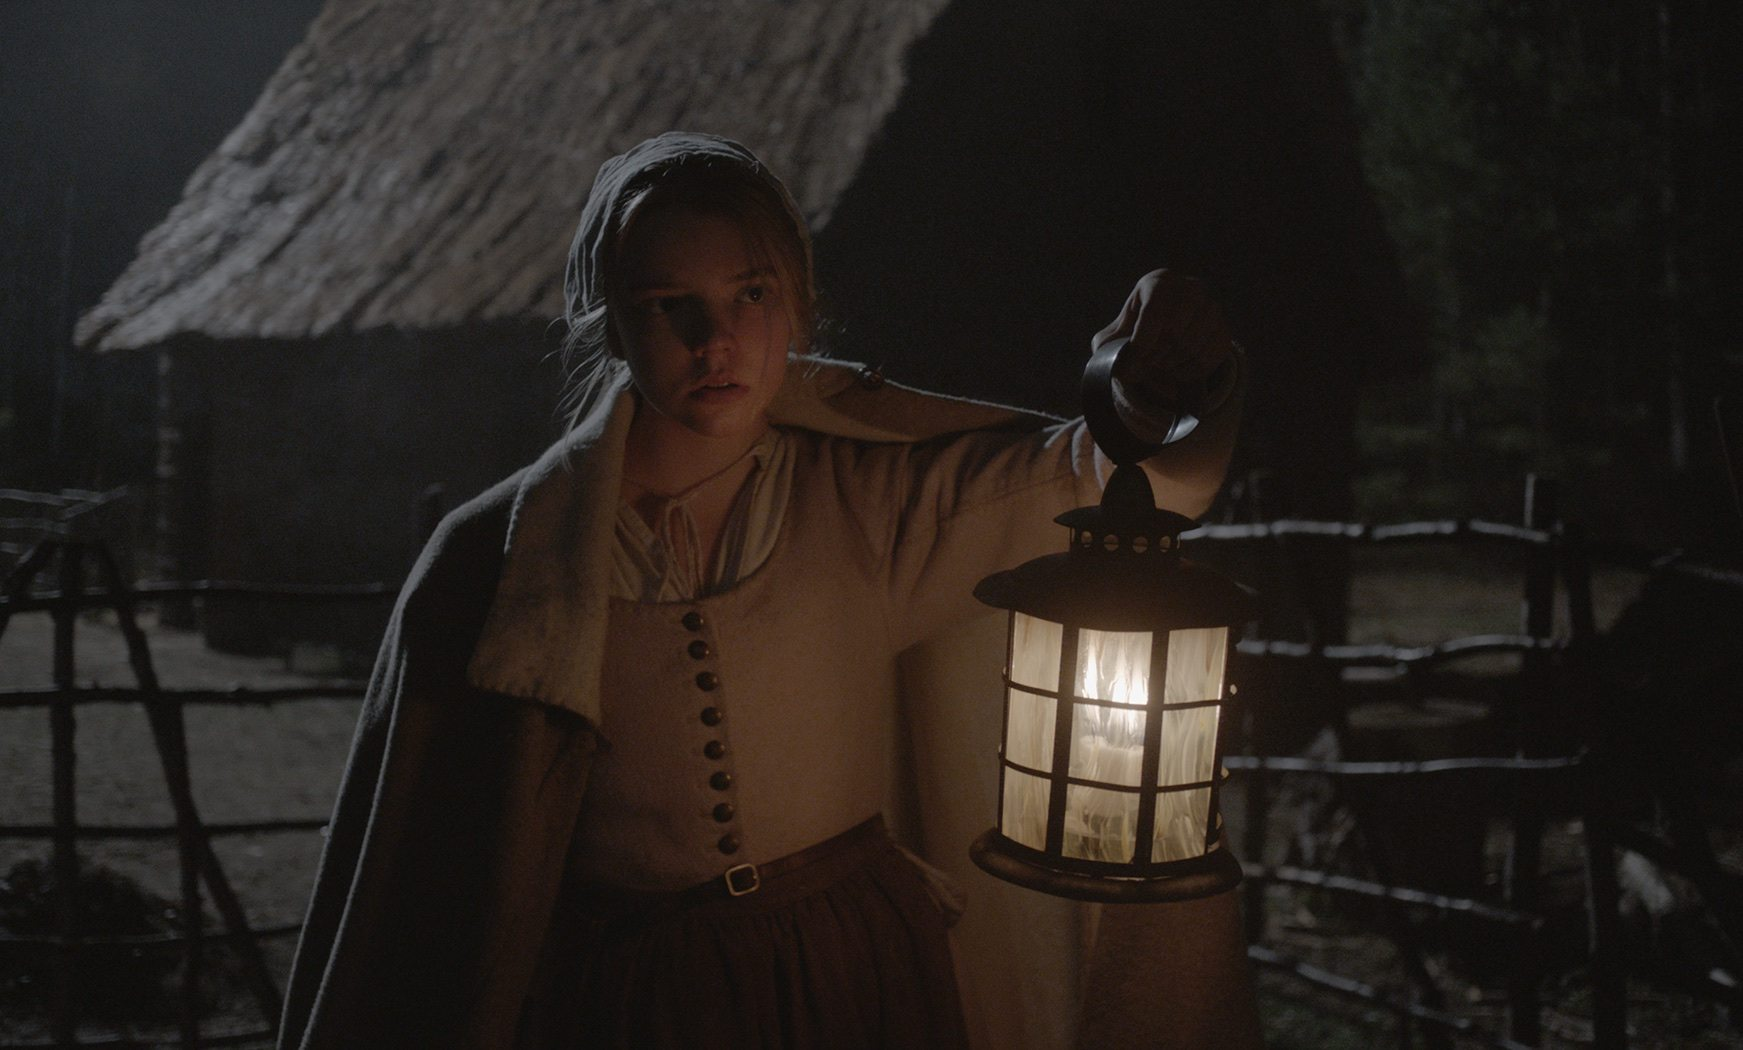 Review: 'The Witch' is an Unsettling Folk Tale Worth Talking About